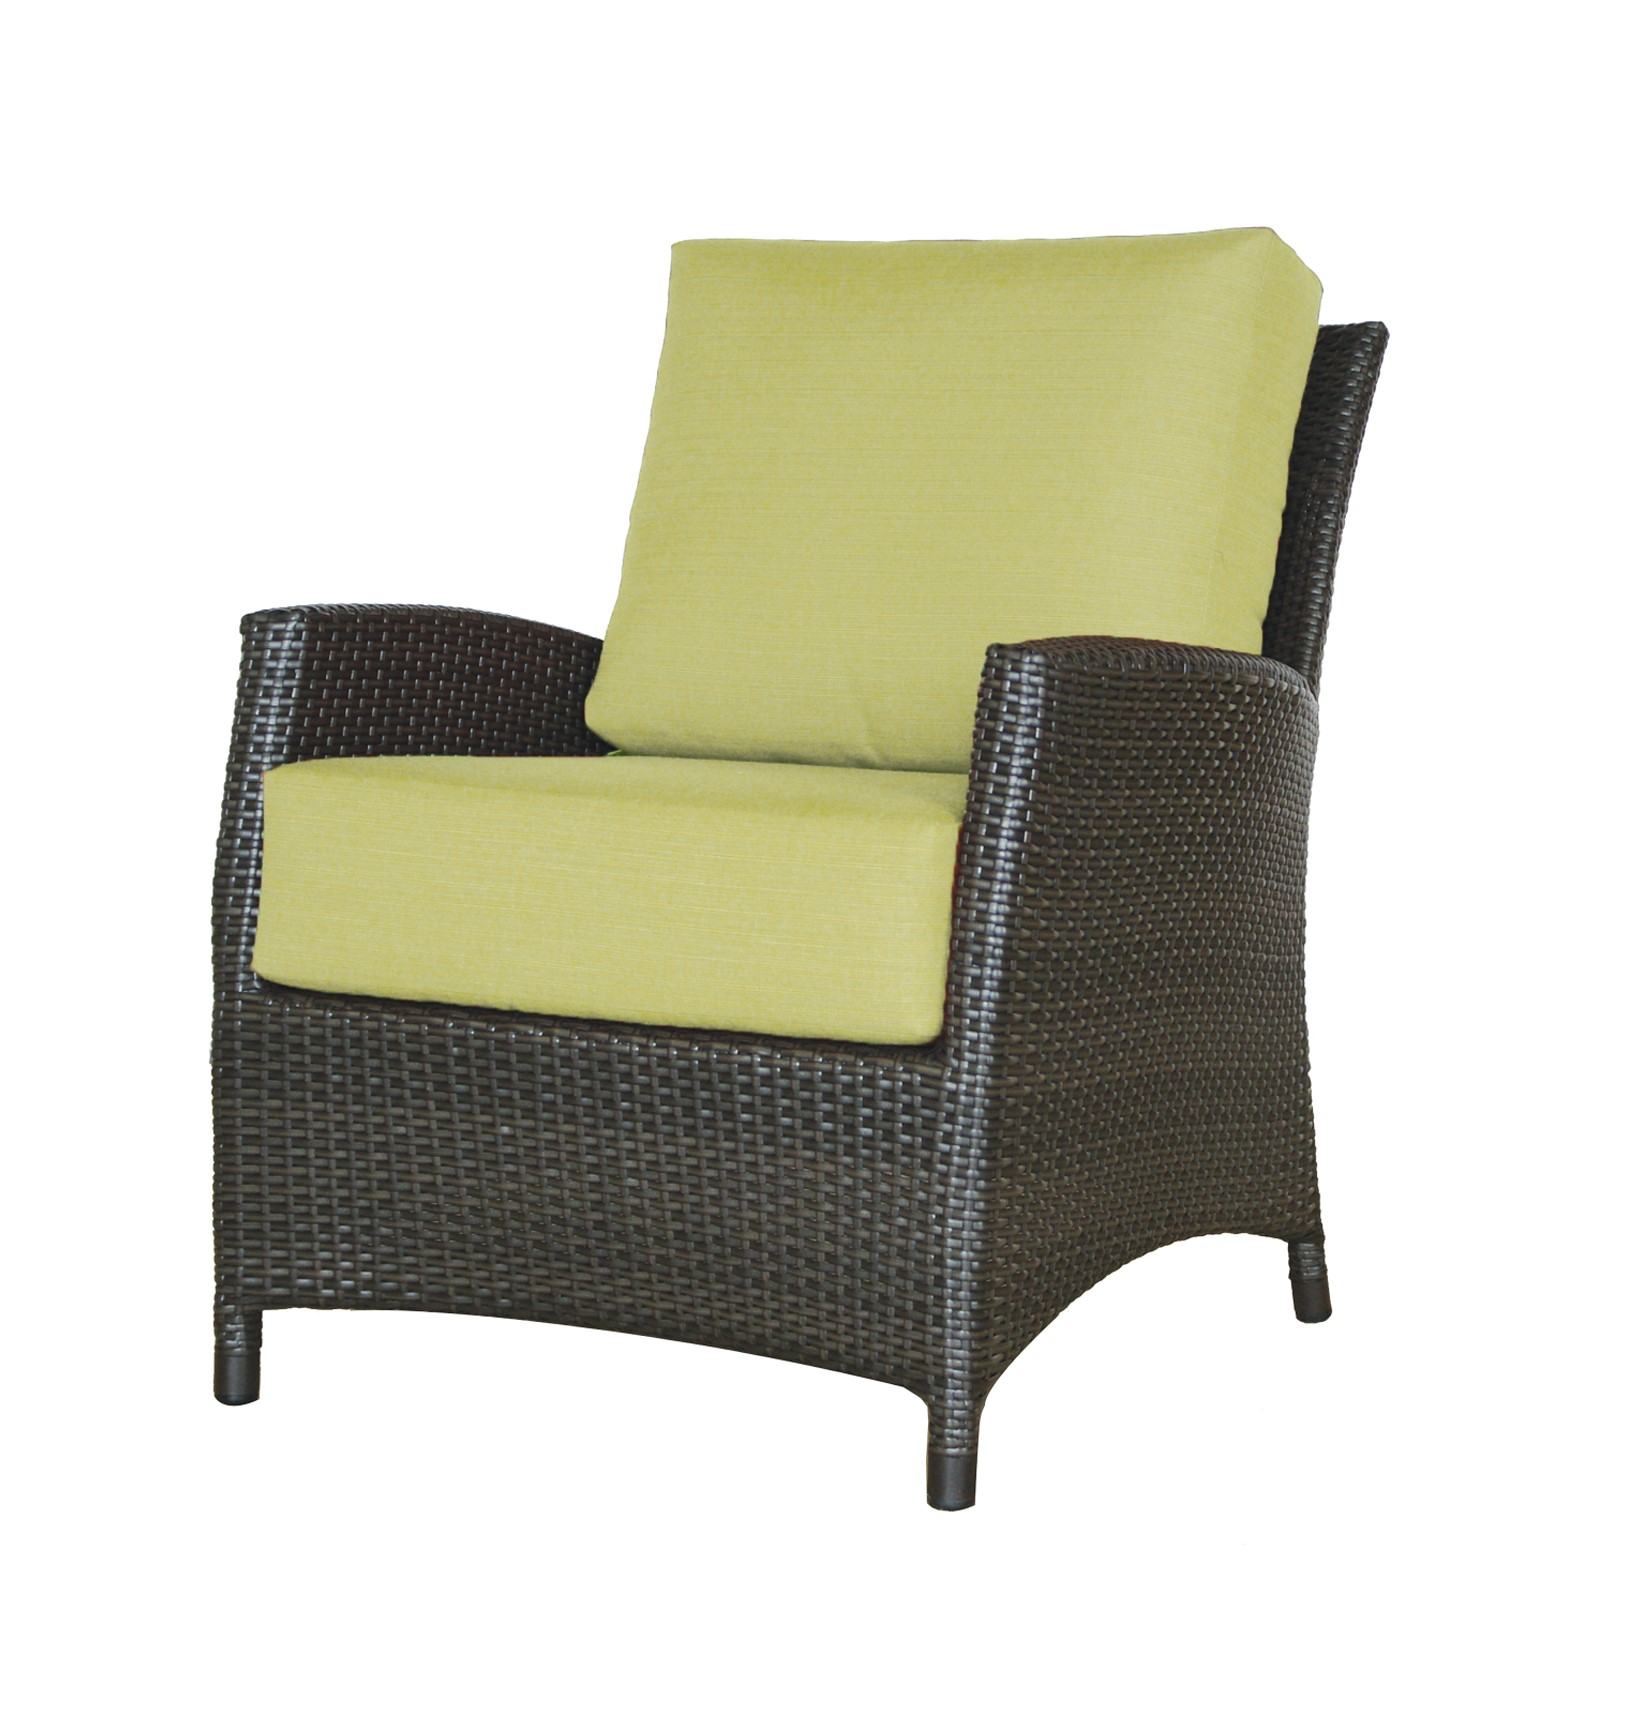 The Palm Harbor club chair in classic wicker resin with green cushions.